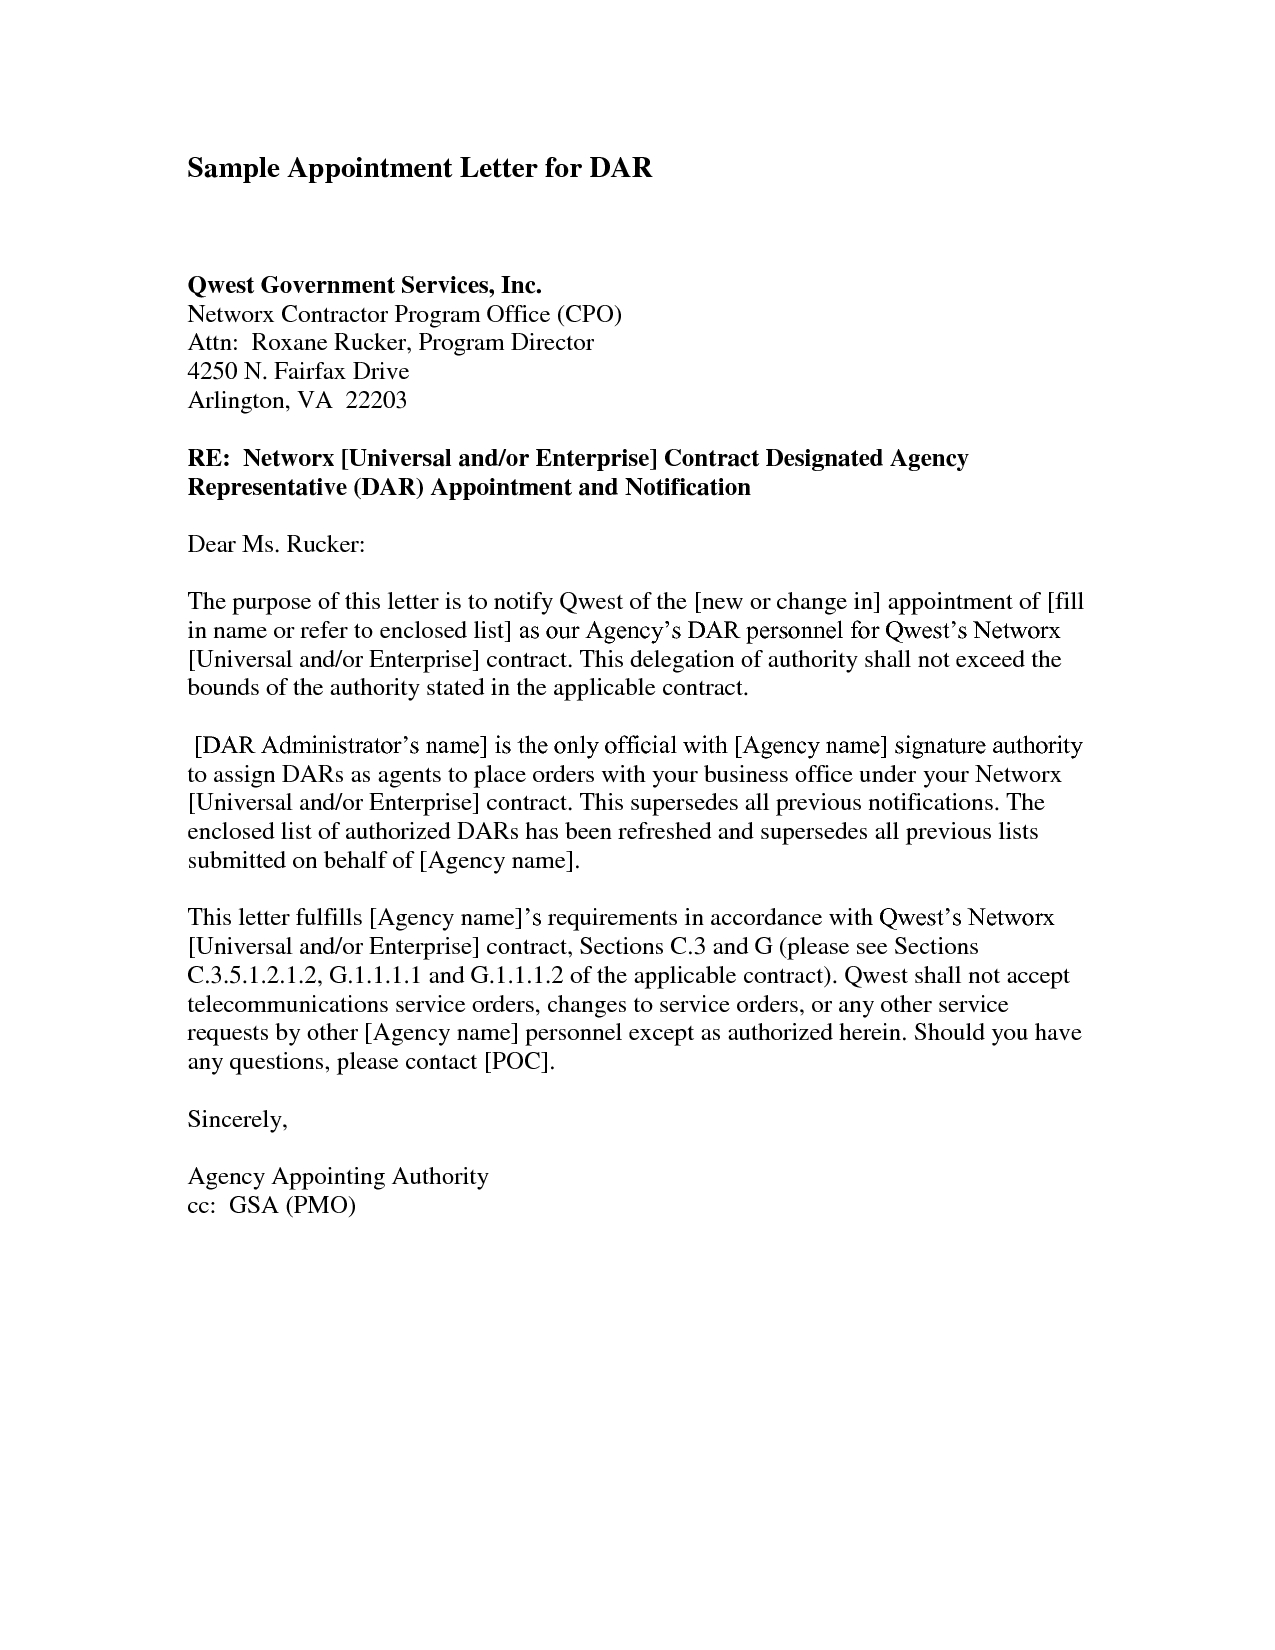 Rental Offer Letter Template - Trustee Appointment Letter Director Trustee is Appointed or